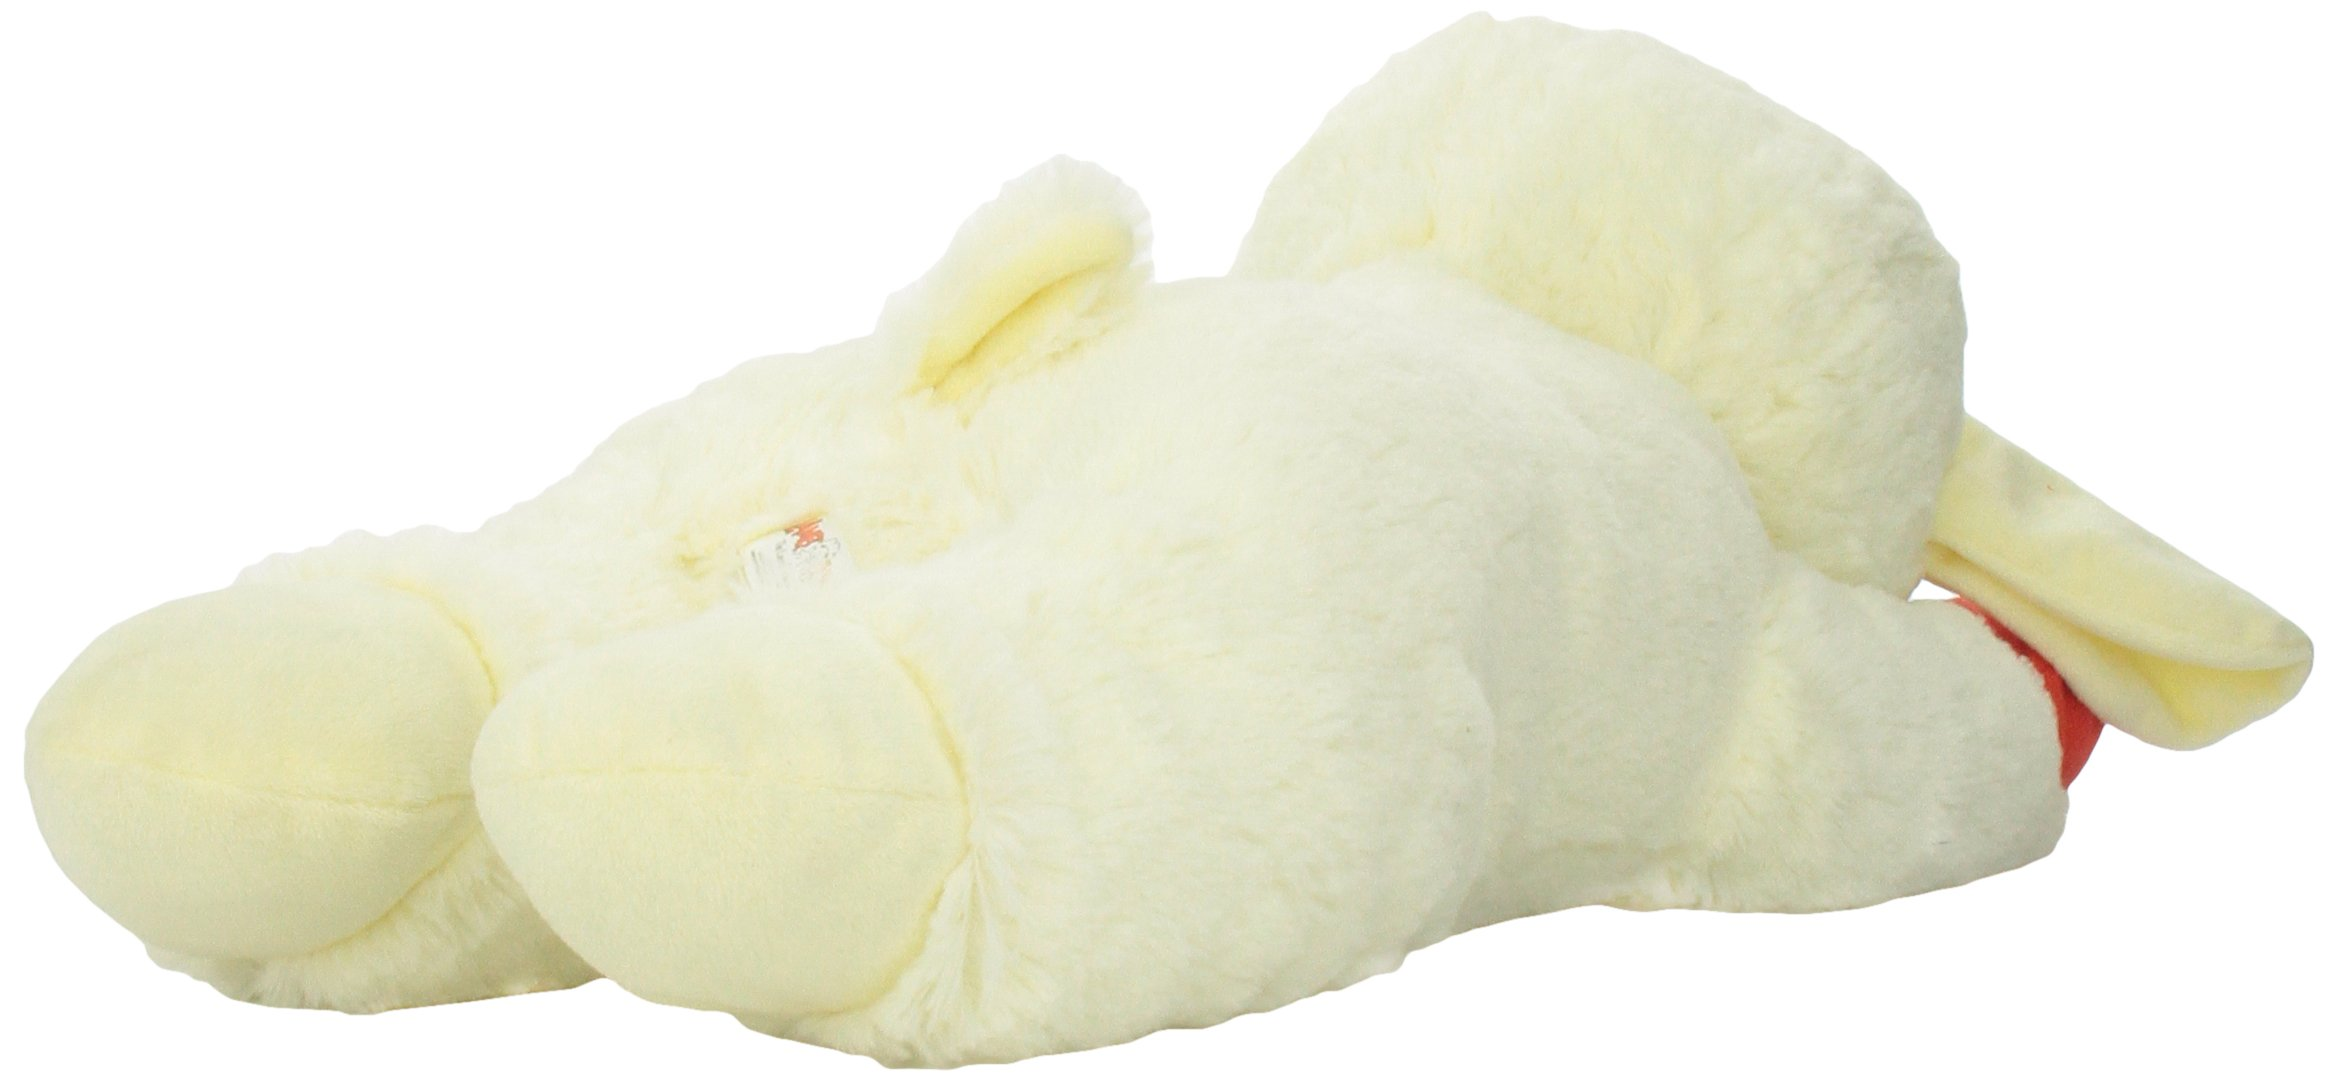 Multipet 48388 Officially Licensed Lamb Chop Jumbo White Plush Dog Toy, 24-Inch by Multipet (Image #3)